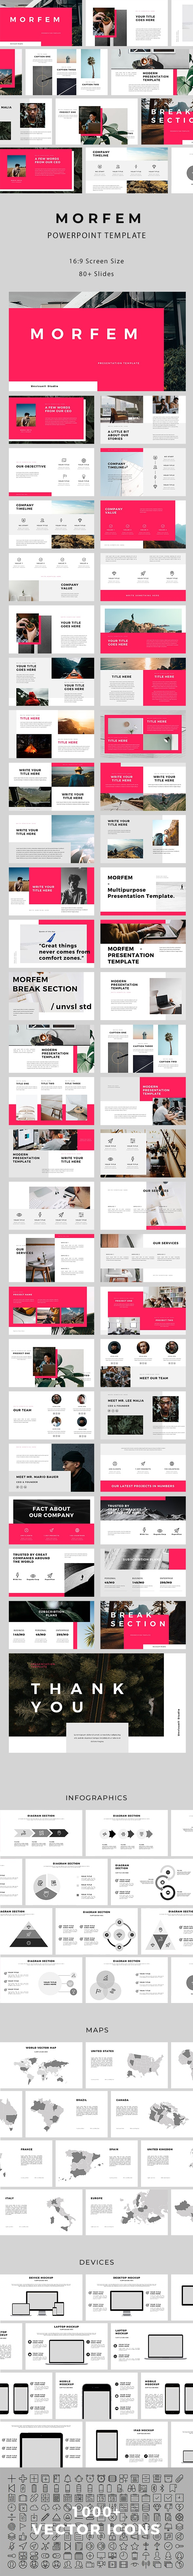 Morfem PowerPoint Template - Creative PowerPoint Templates